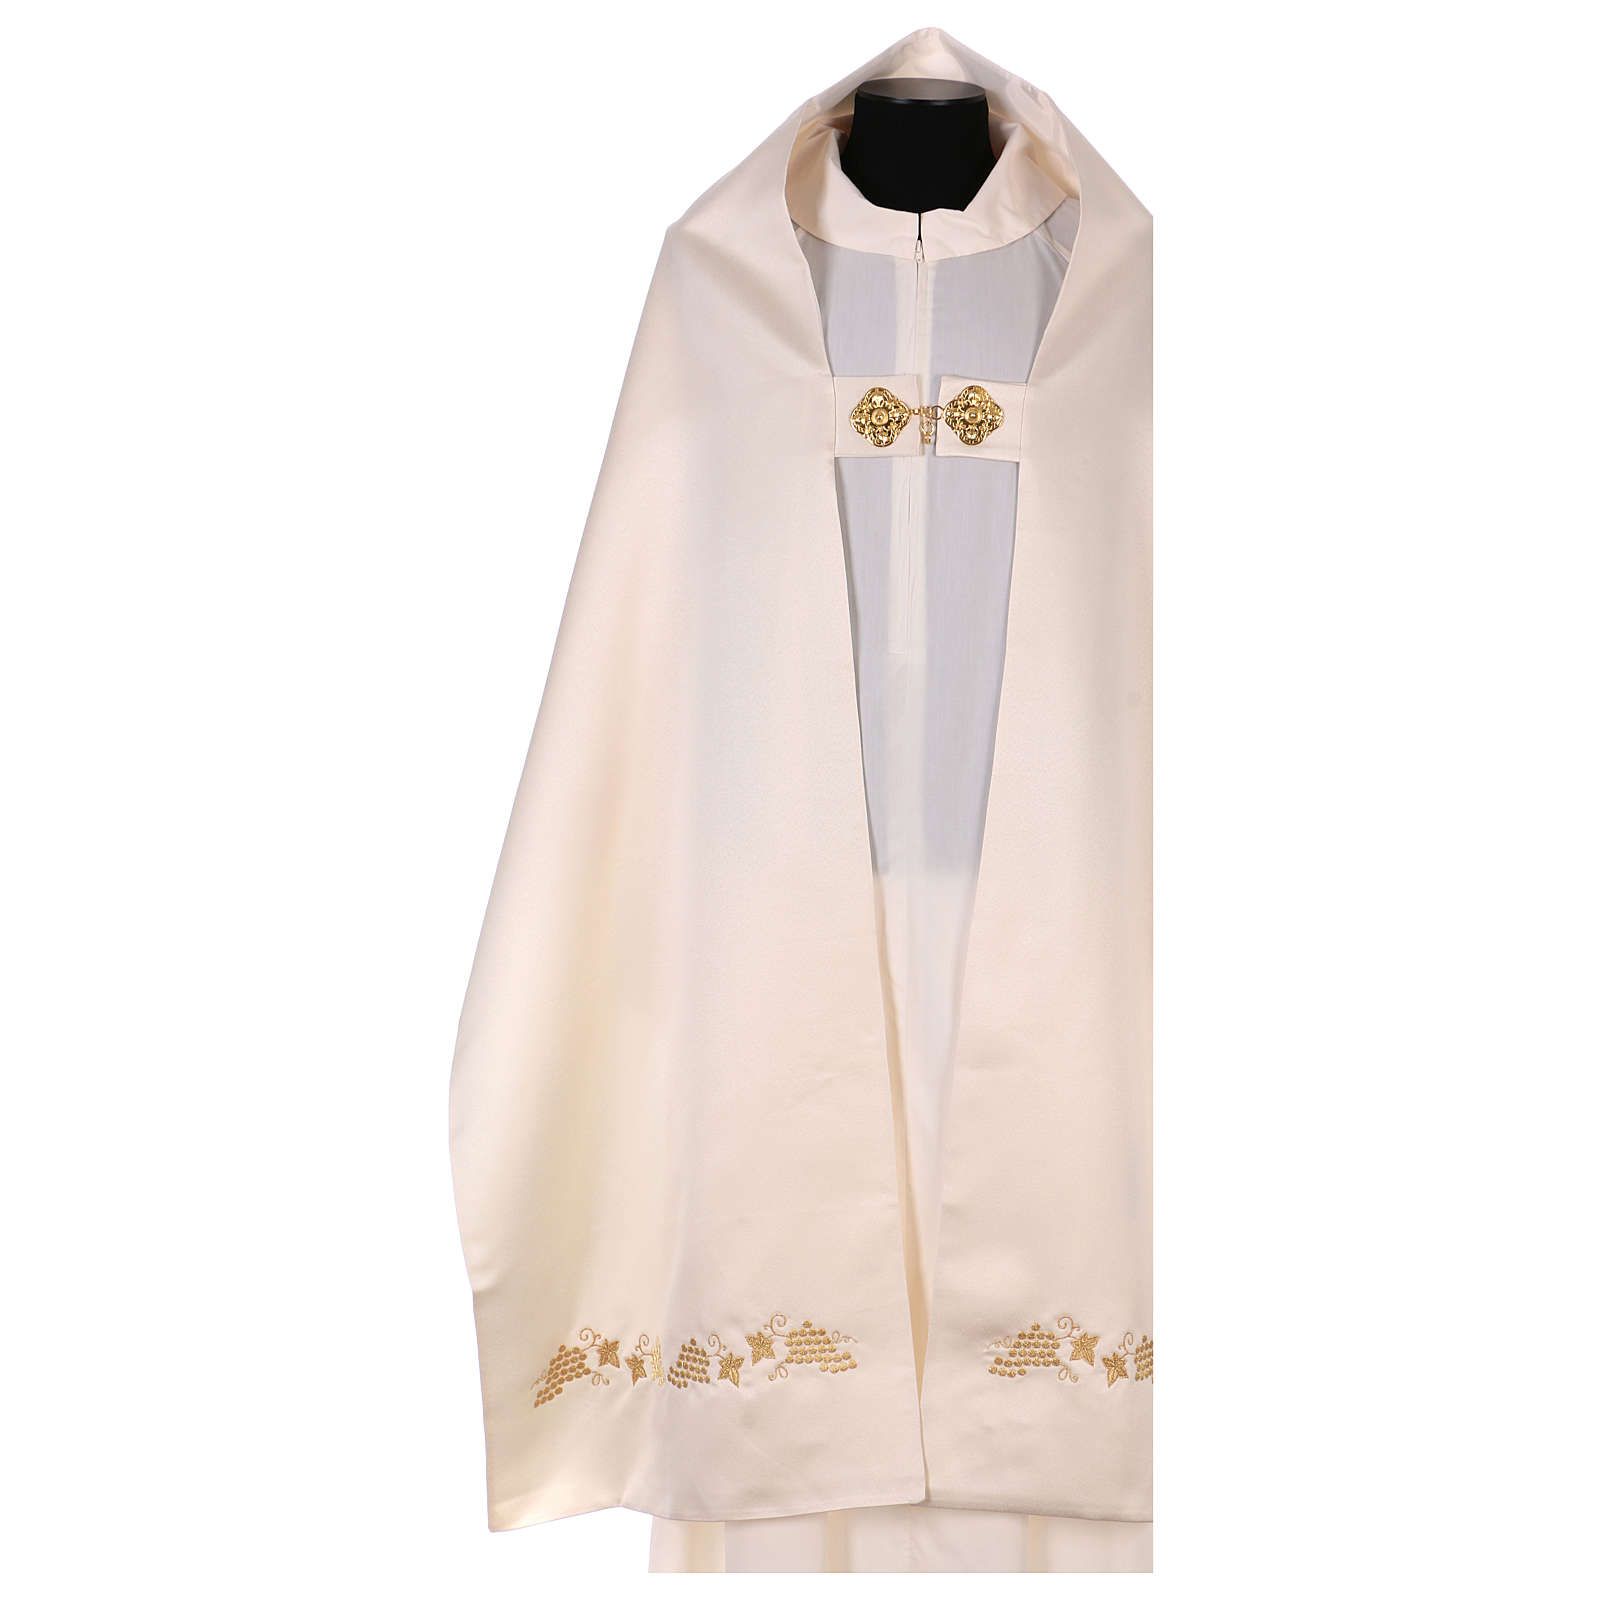 Humeral veil with gold embroidery with JHS and crowns 4